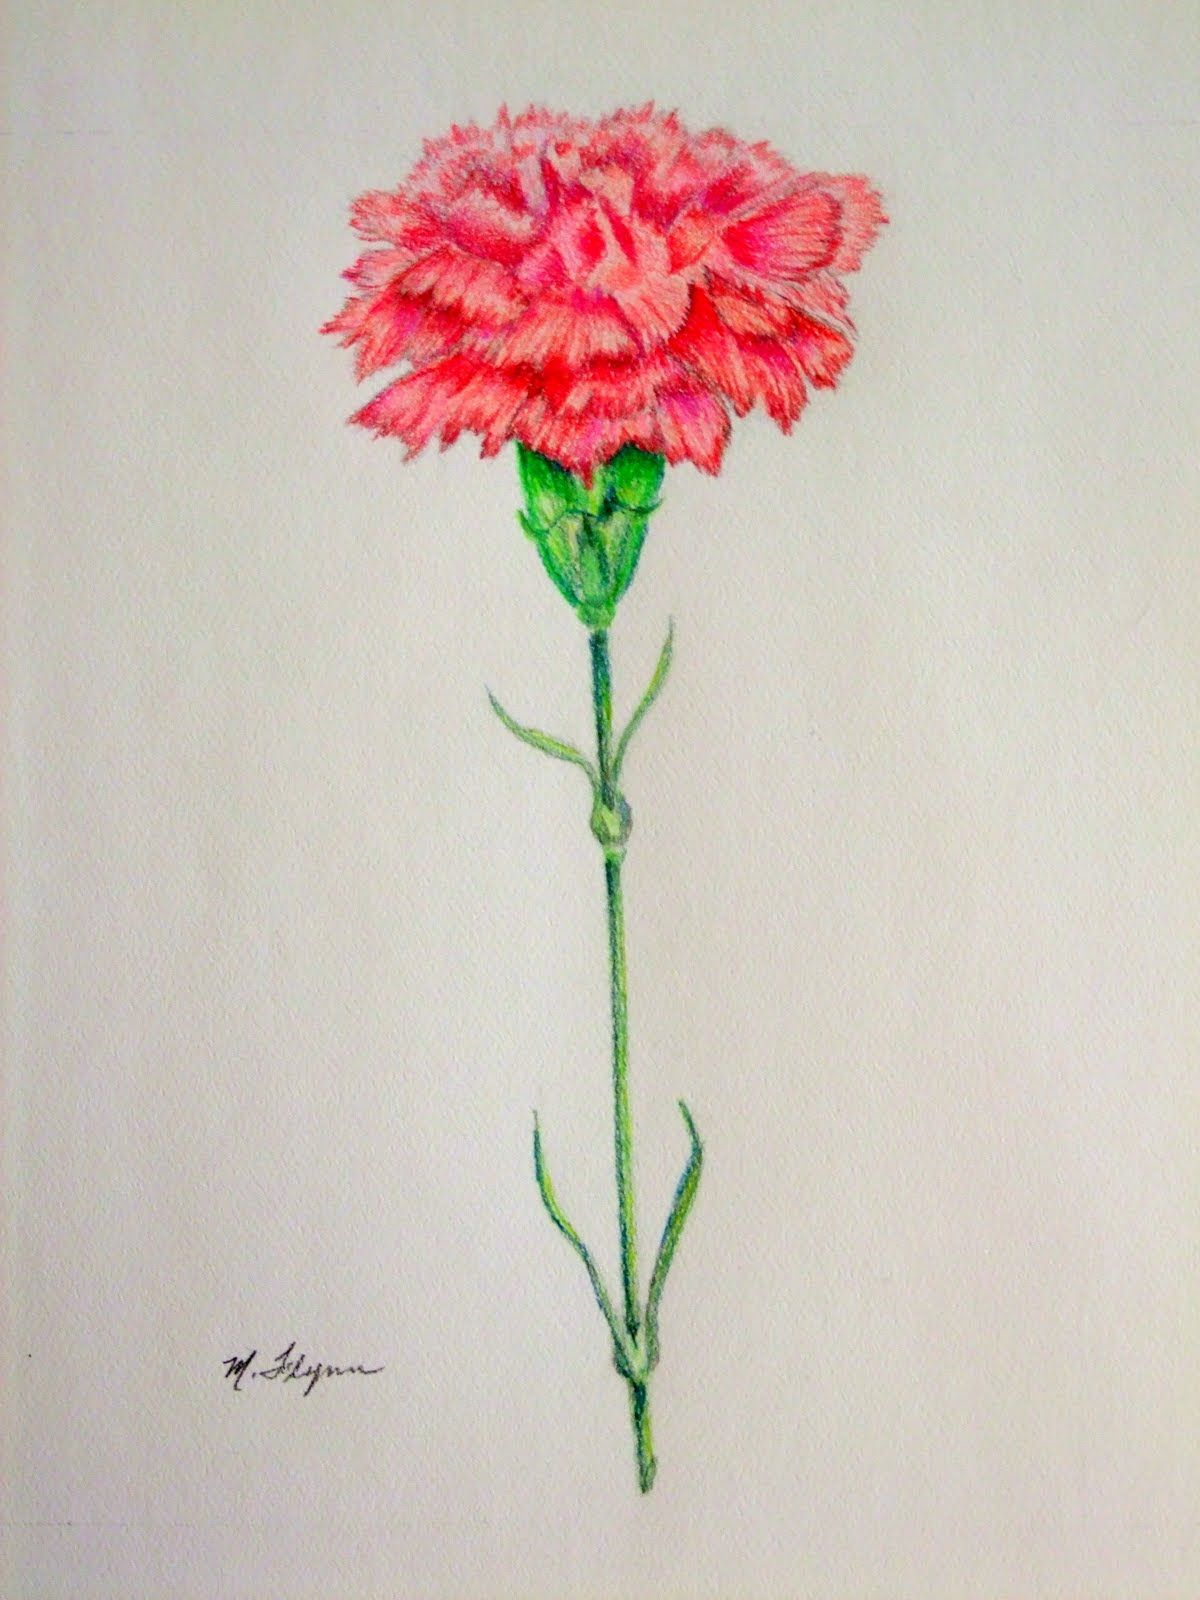 Carnation Flower Drawing My Artbox Carnation 9x12 Colored Pencil Study On Strathmore Pastel Pencil Drawings Of Flowers Flower Drawing Carnation Tattoo